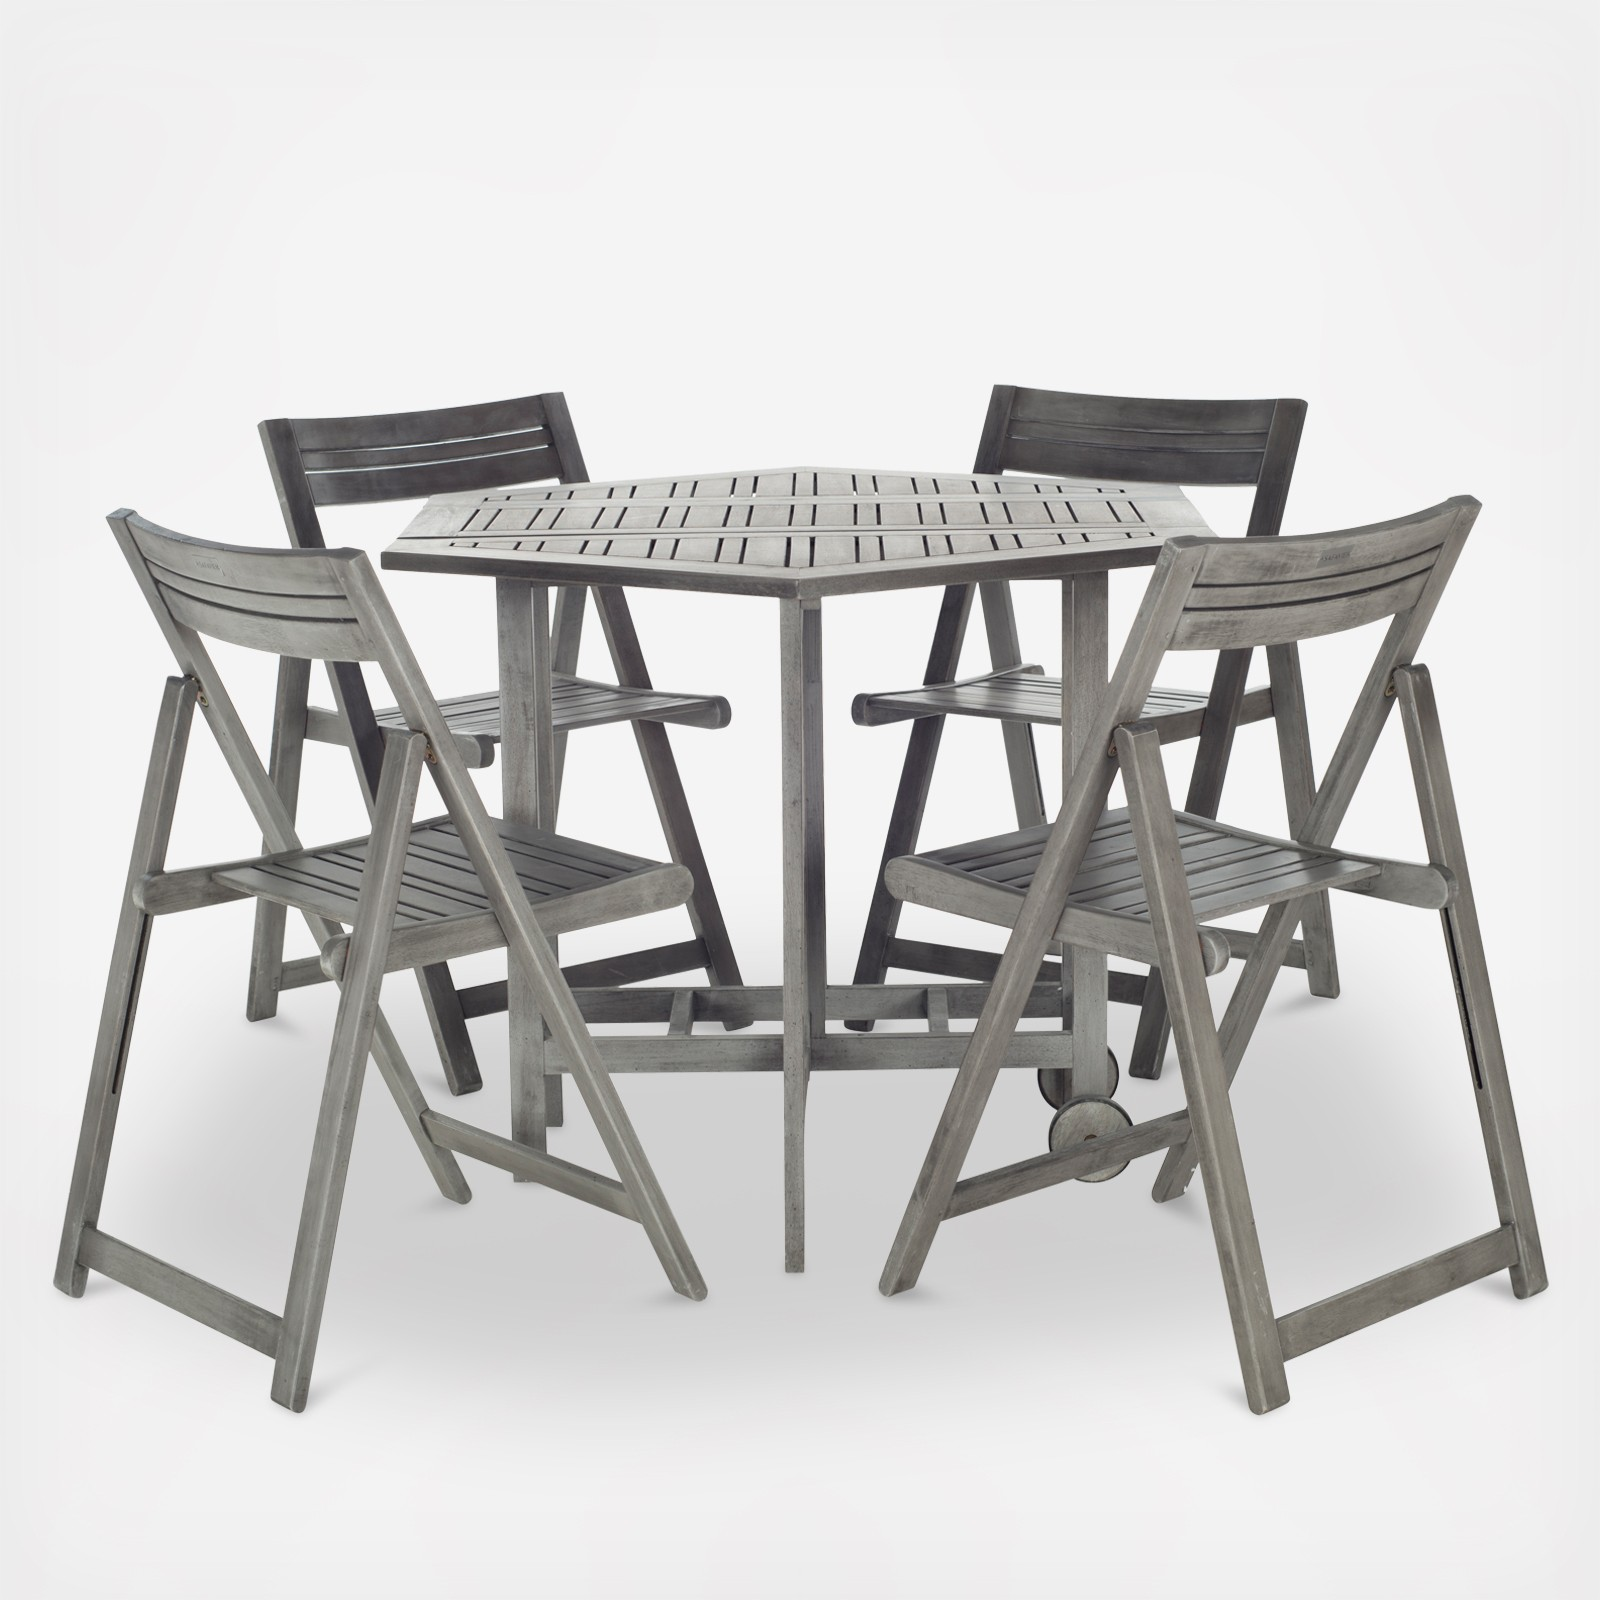 Outdoor Collapsible Dining Table Set | Wedding Planning, Registry ...